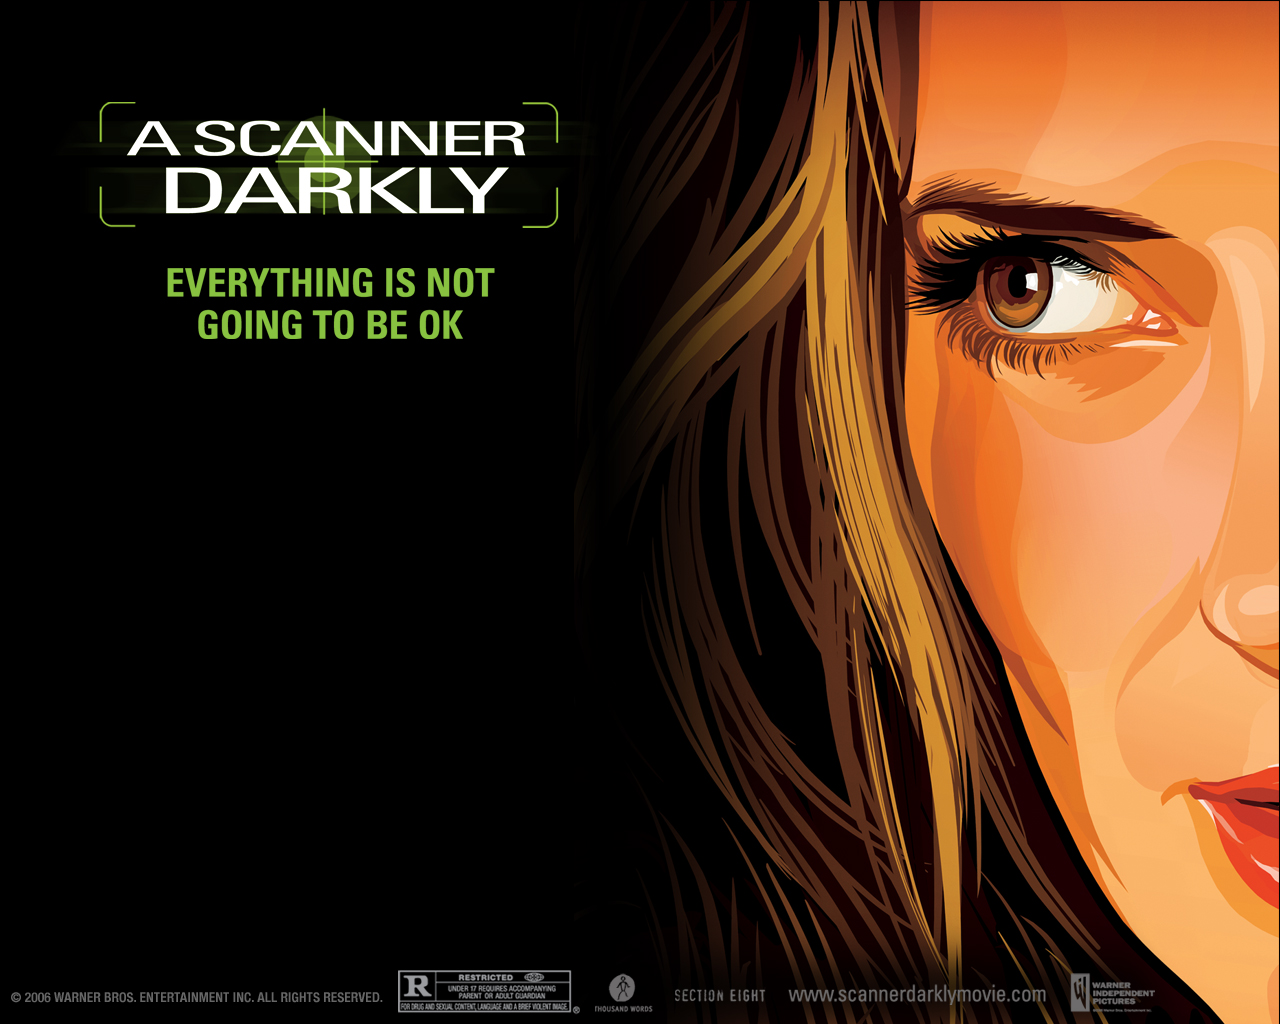 A_Scanner_Darkly_5.jpg